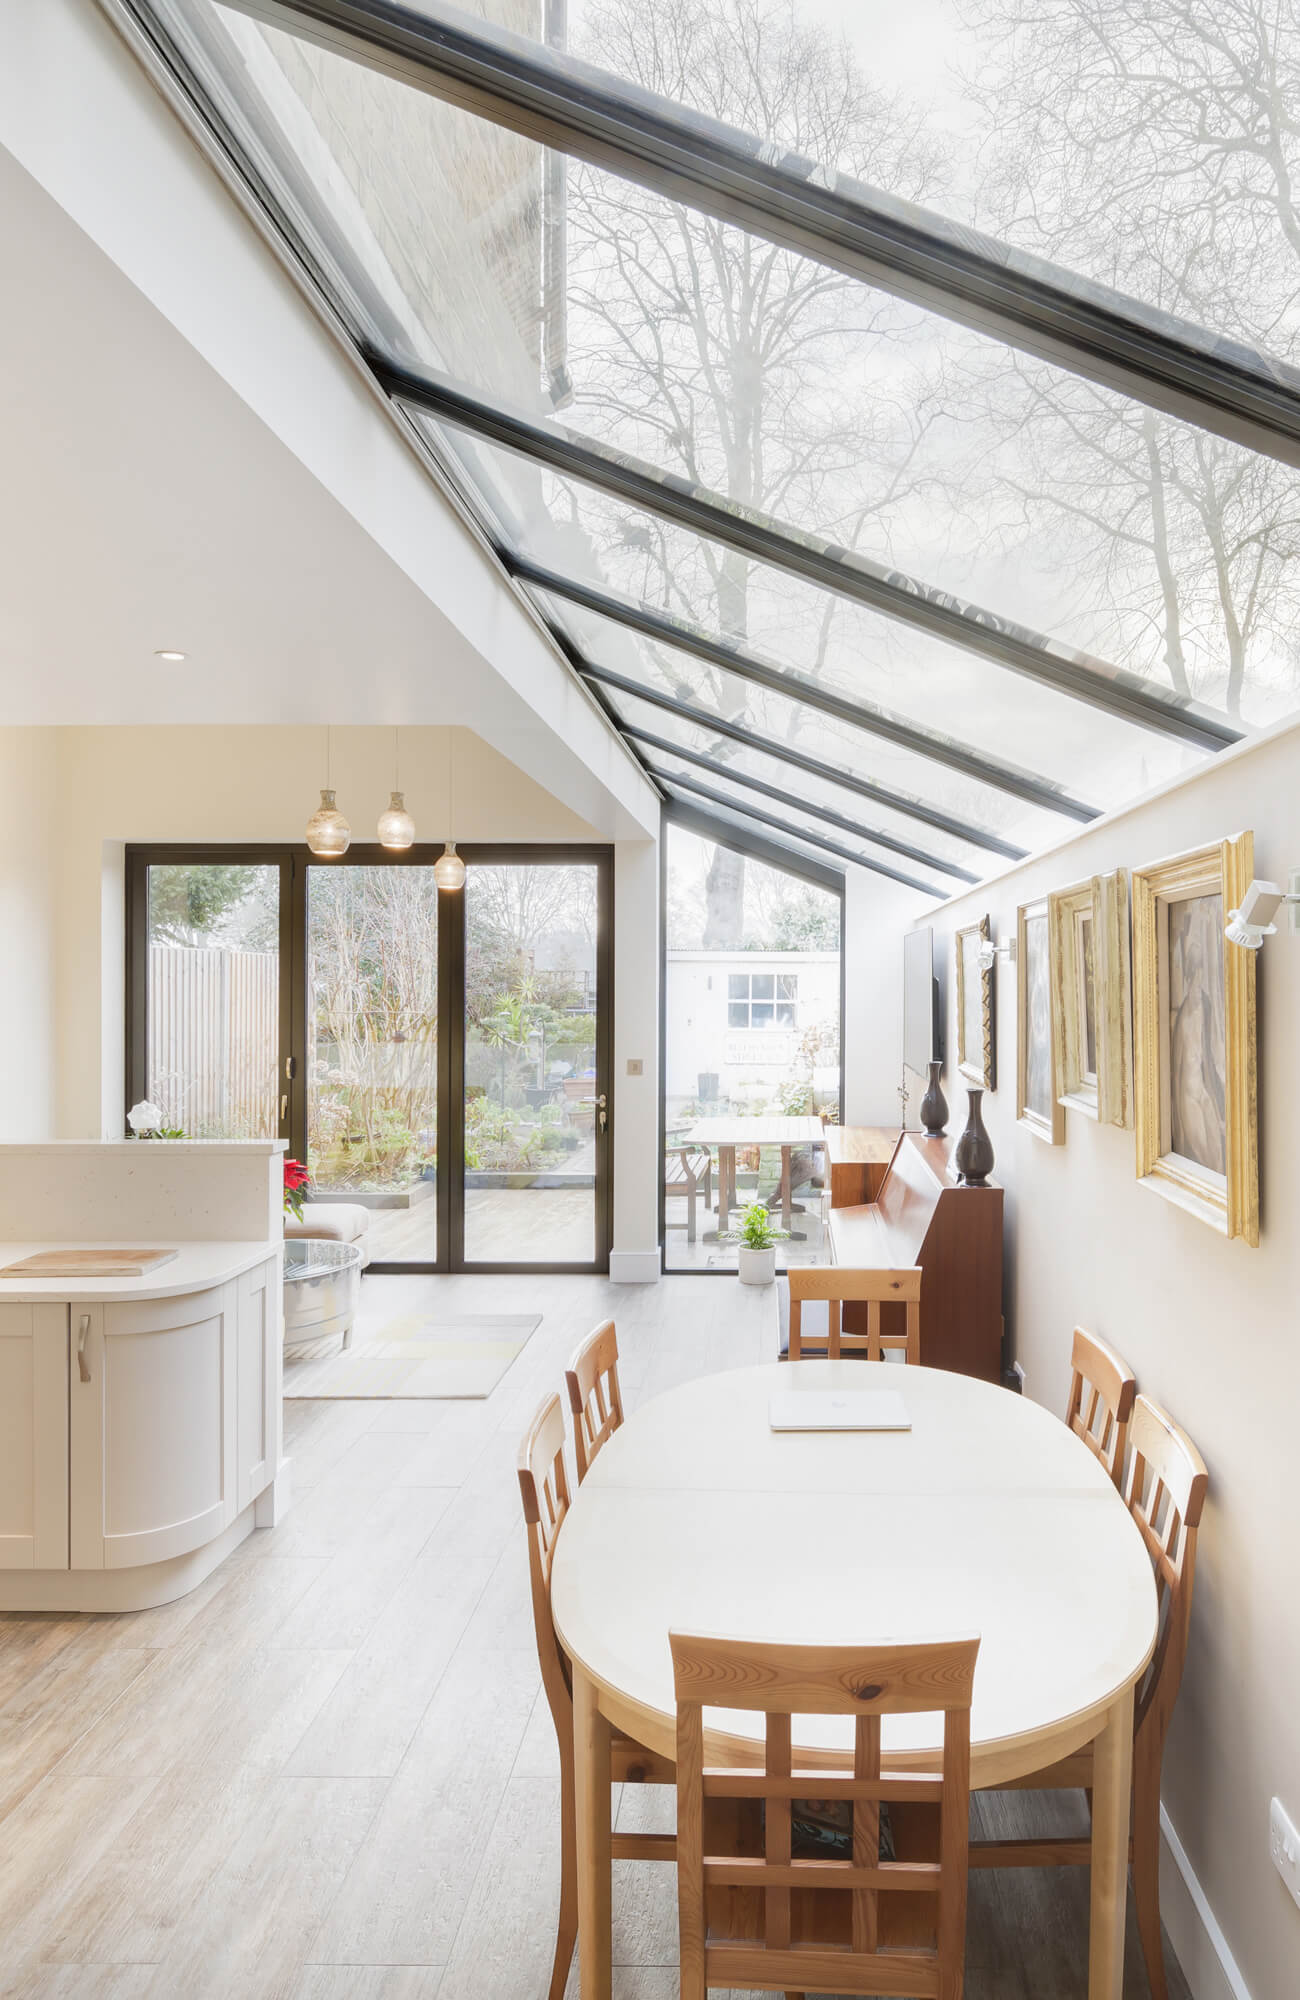 Marguerite Murdoch Architects - Based in Teddington, Richmond Upon Thames - Loft Conversion, Kitchen Extension and Total Refurbishment